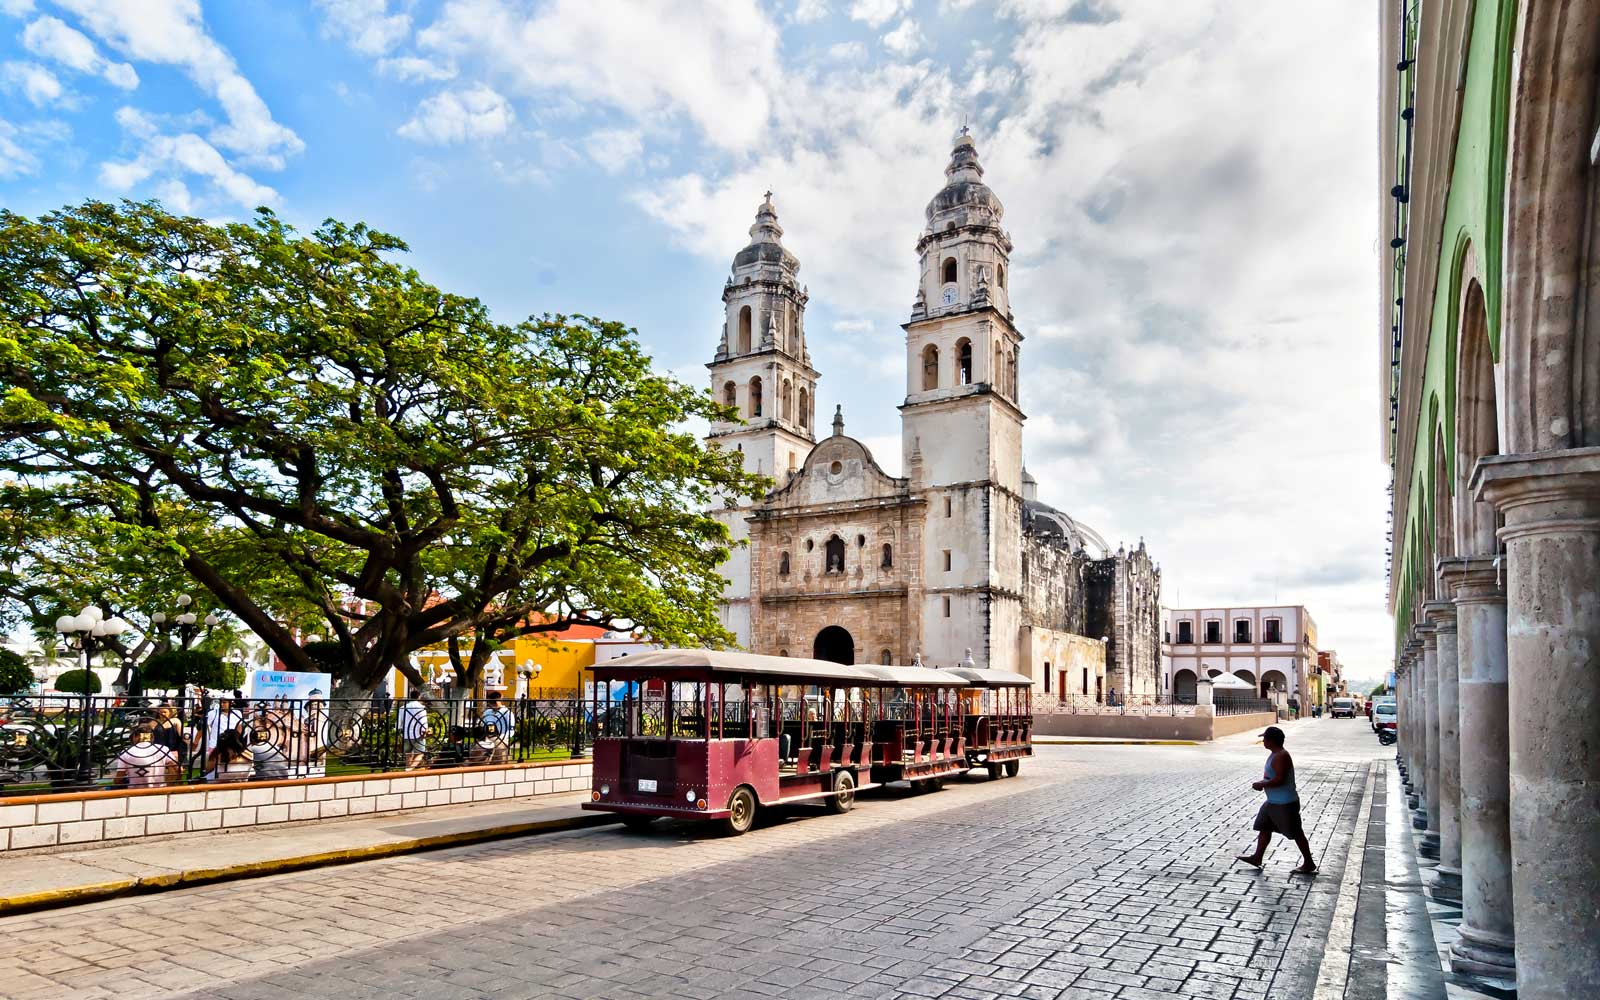 Campeche, Mexico was founded in 1540 by Spanish conquistadores as San Francisco de Campeche atop the pre-existing Maya city of Canpech.